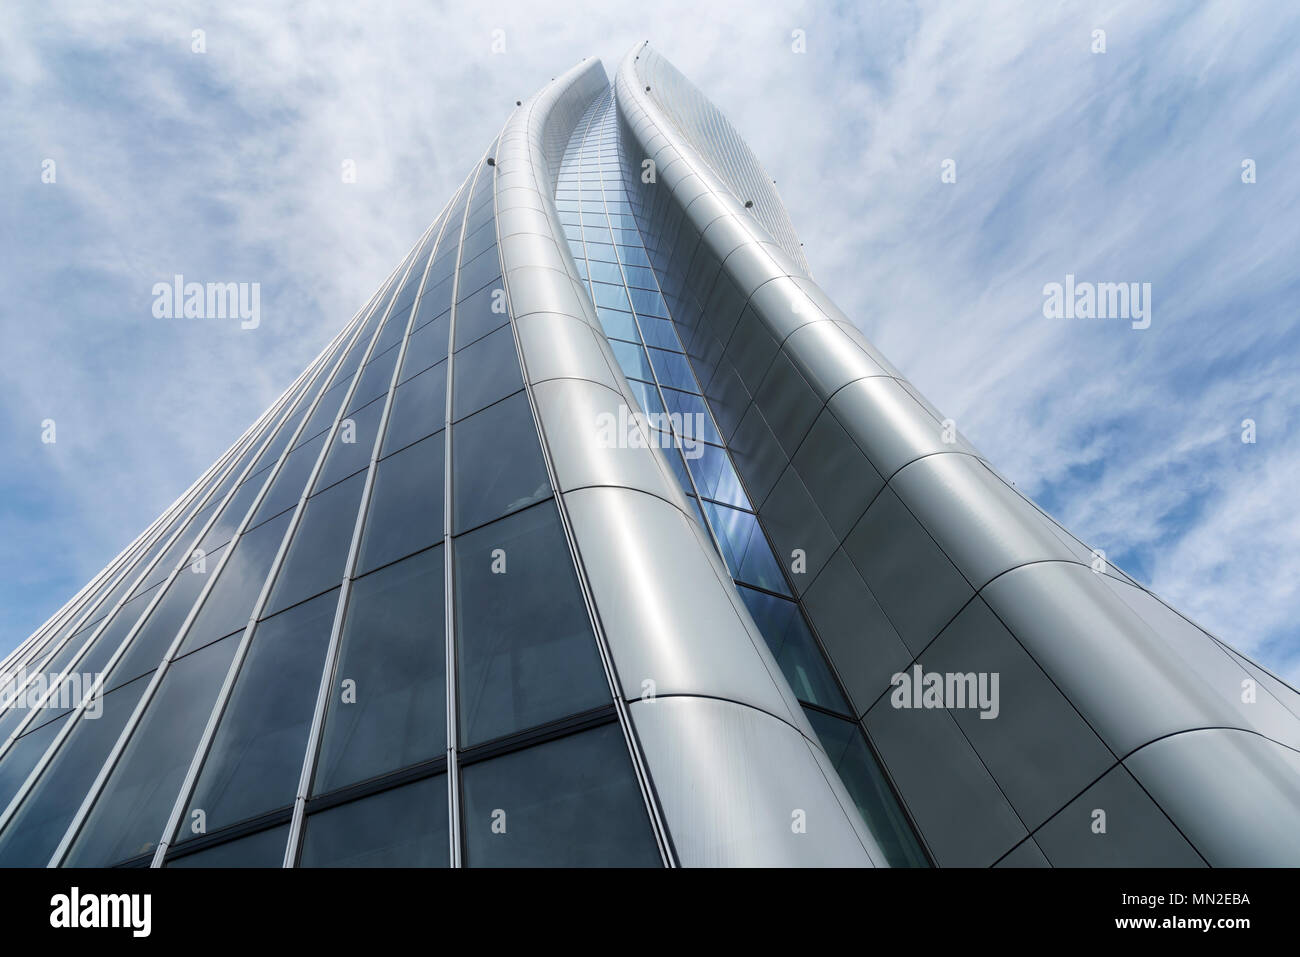 Milan, Italy - May 13, 2018: the Hadid tower in the Citylife new district - Stock Image